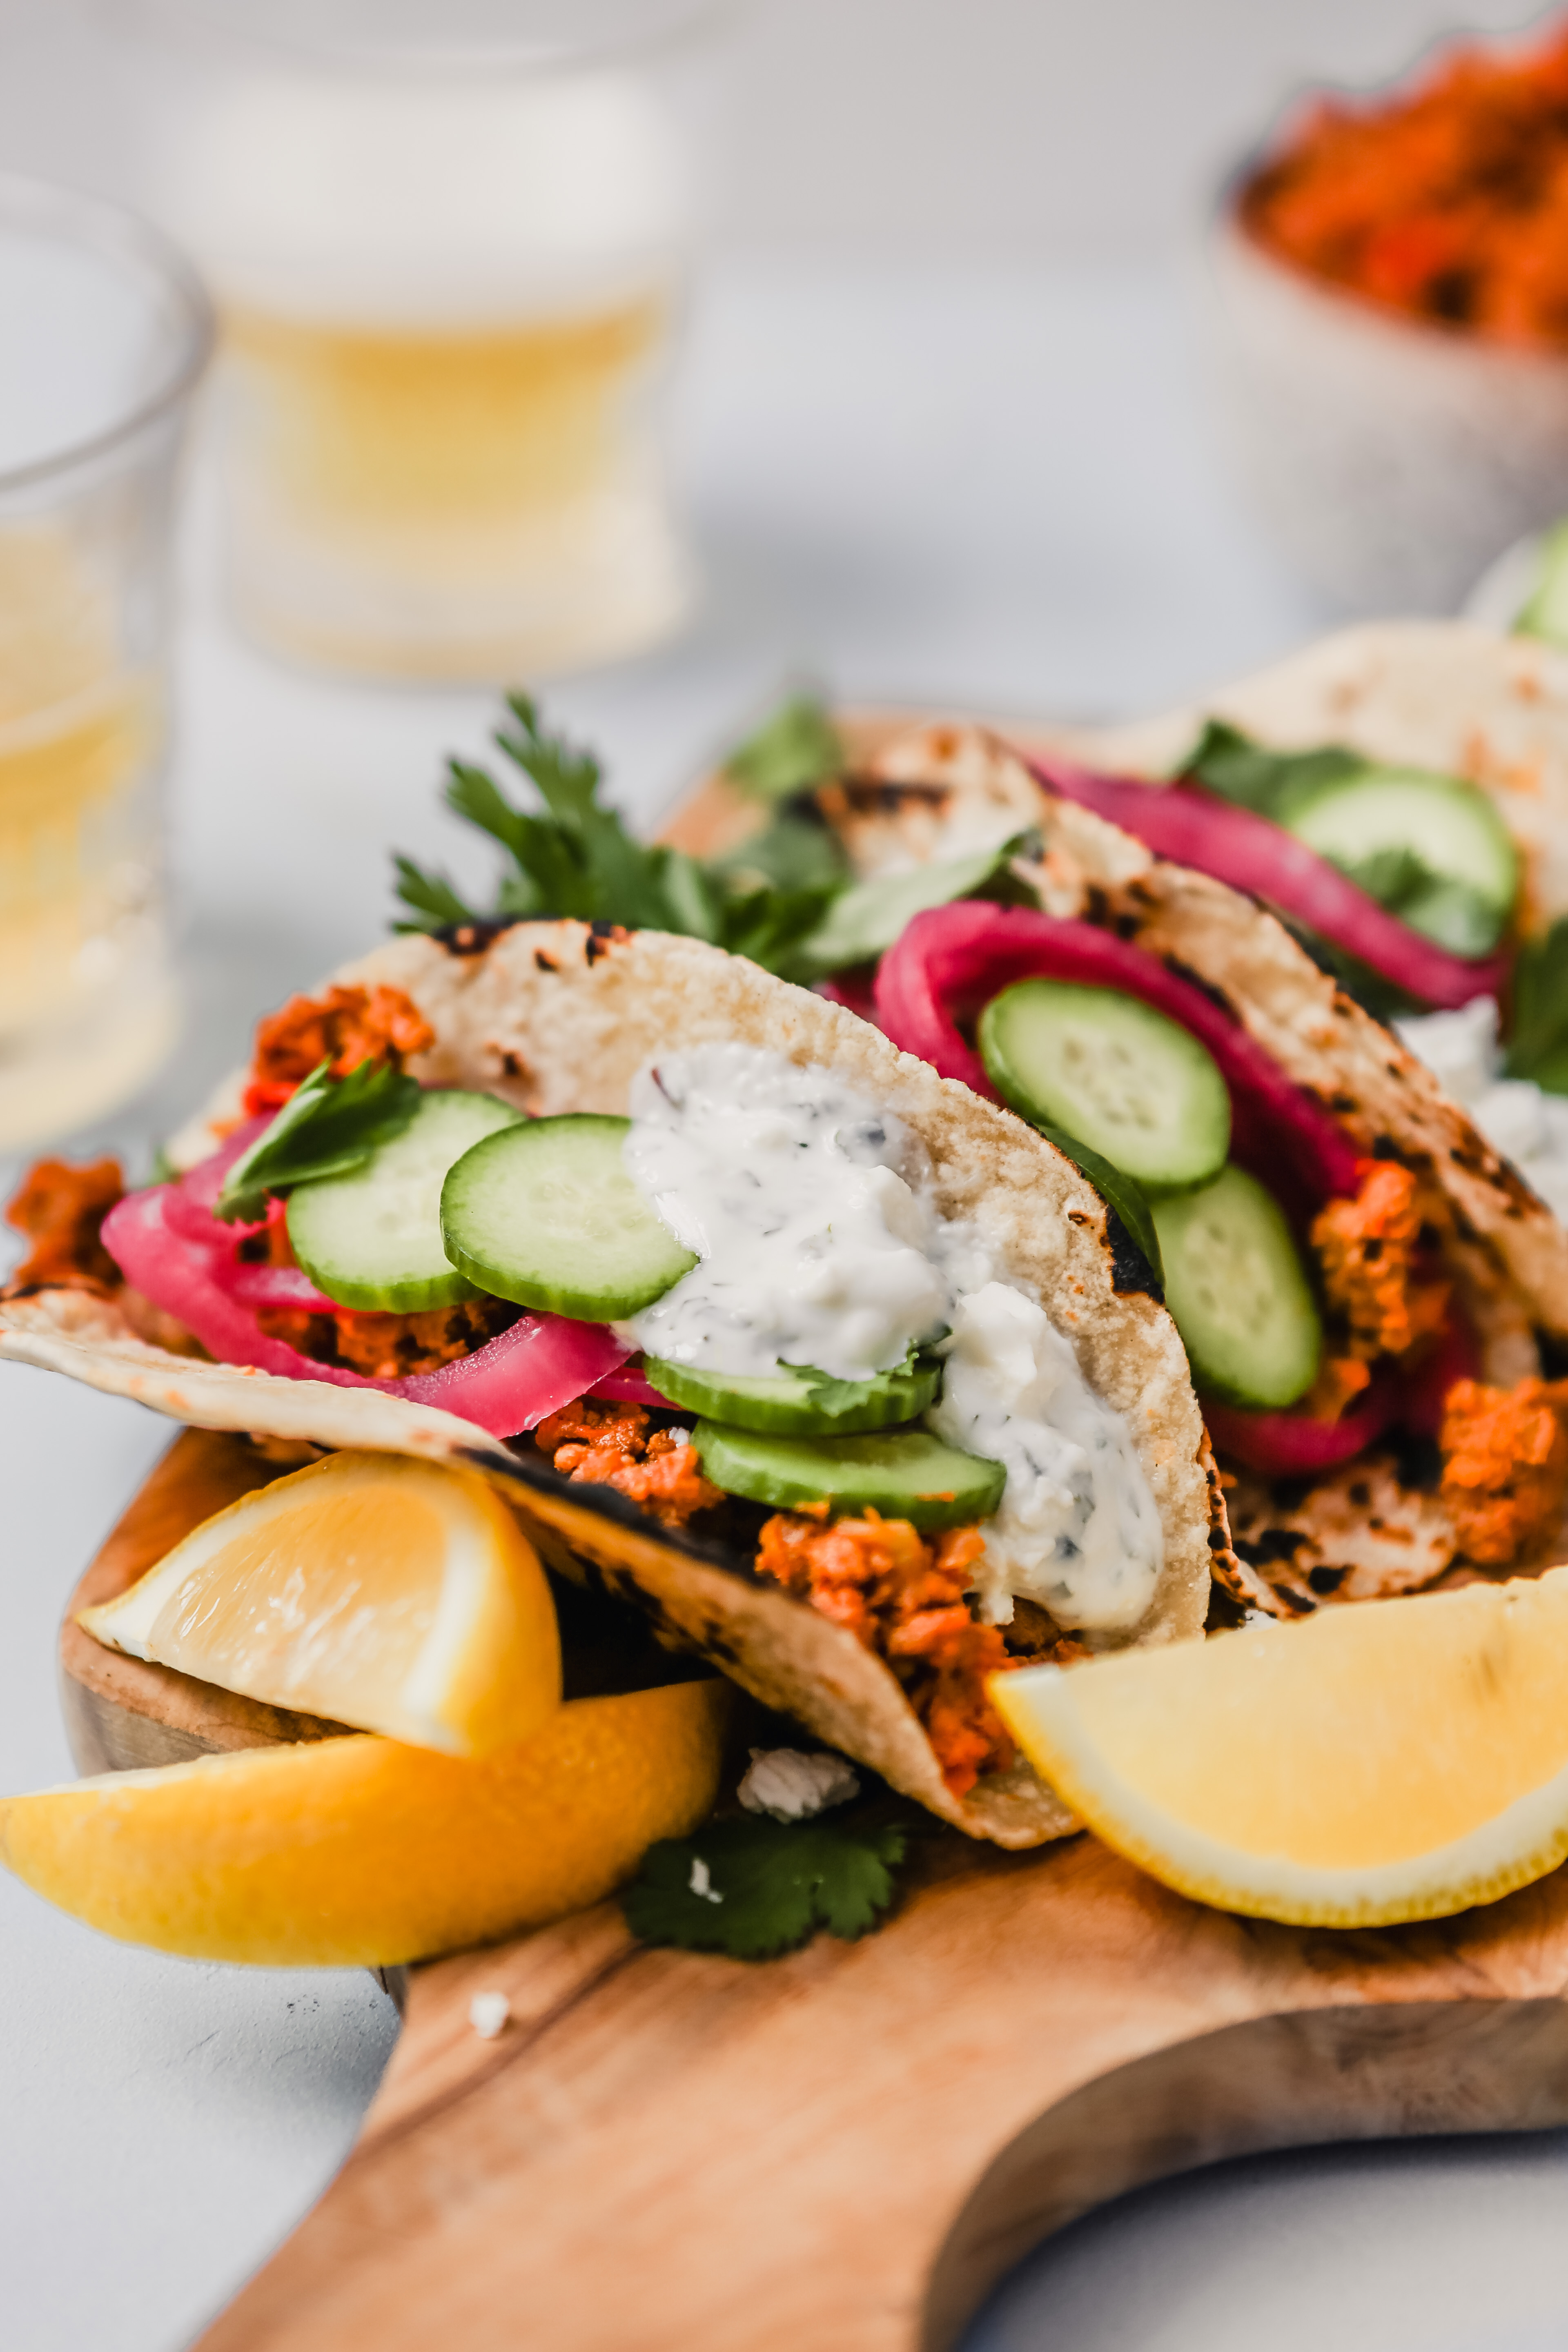 Photograph of three lamb tacos arranged on a wooden cutting board with lemon wedges and cucumber slices.